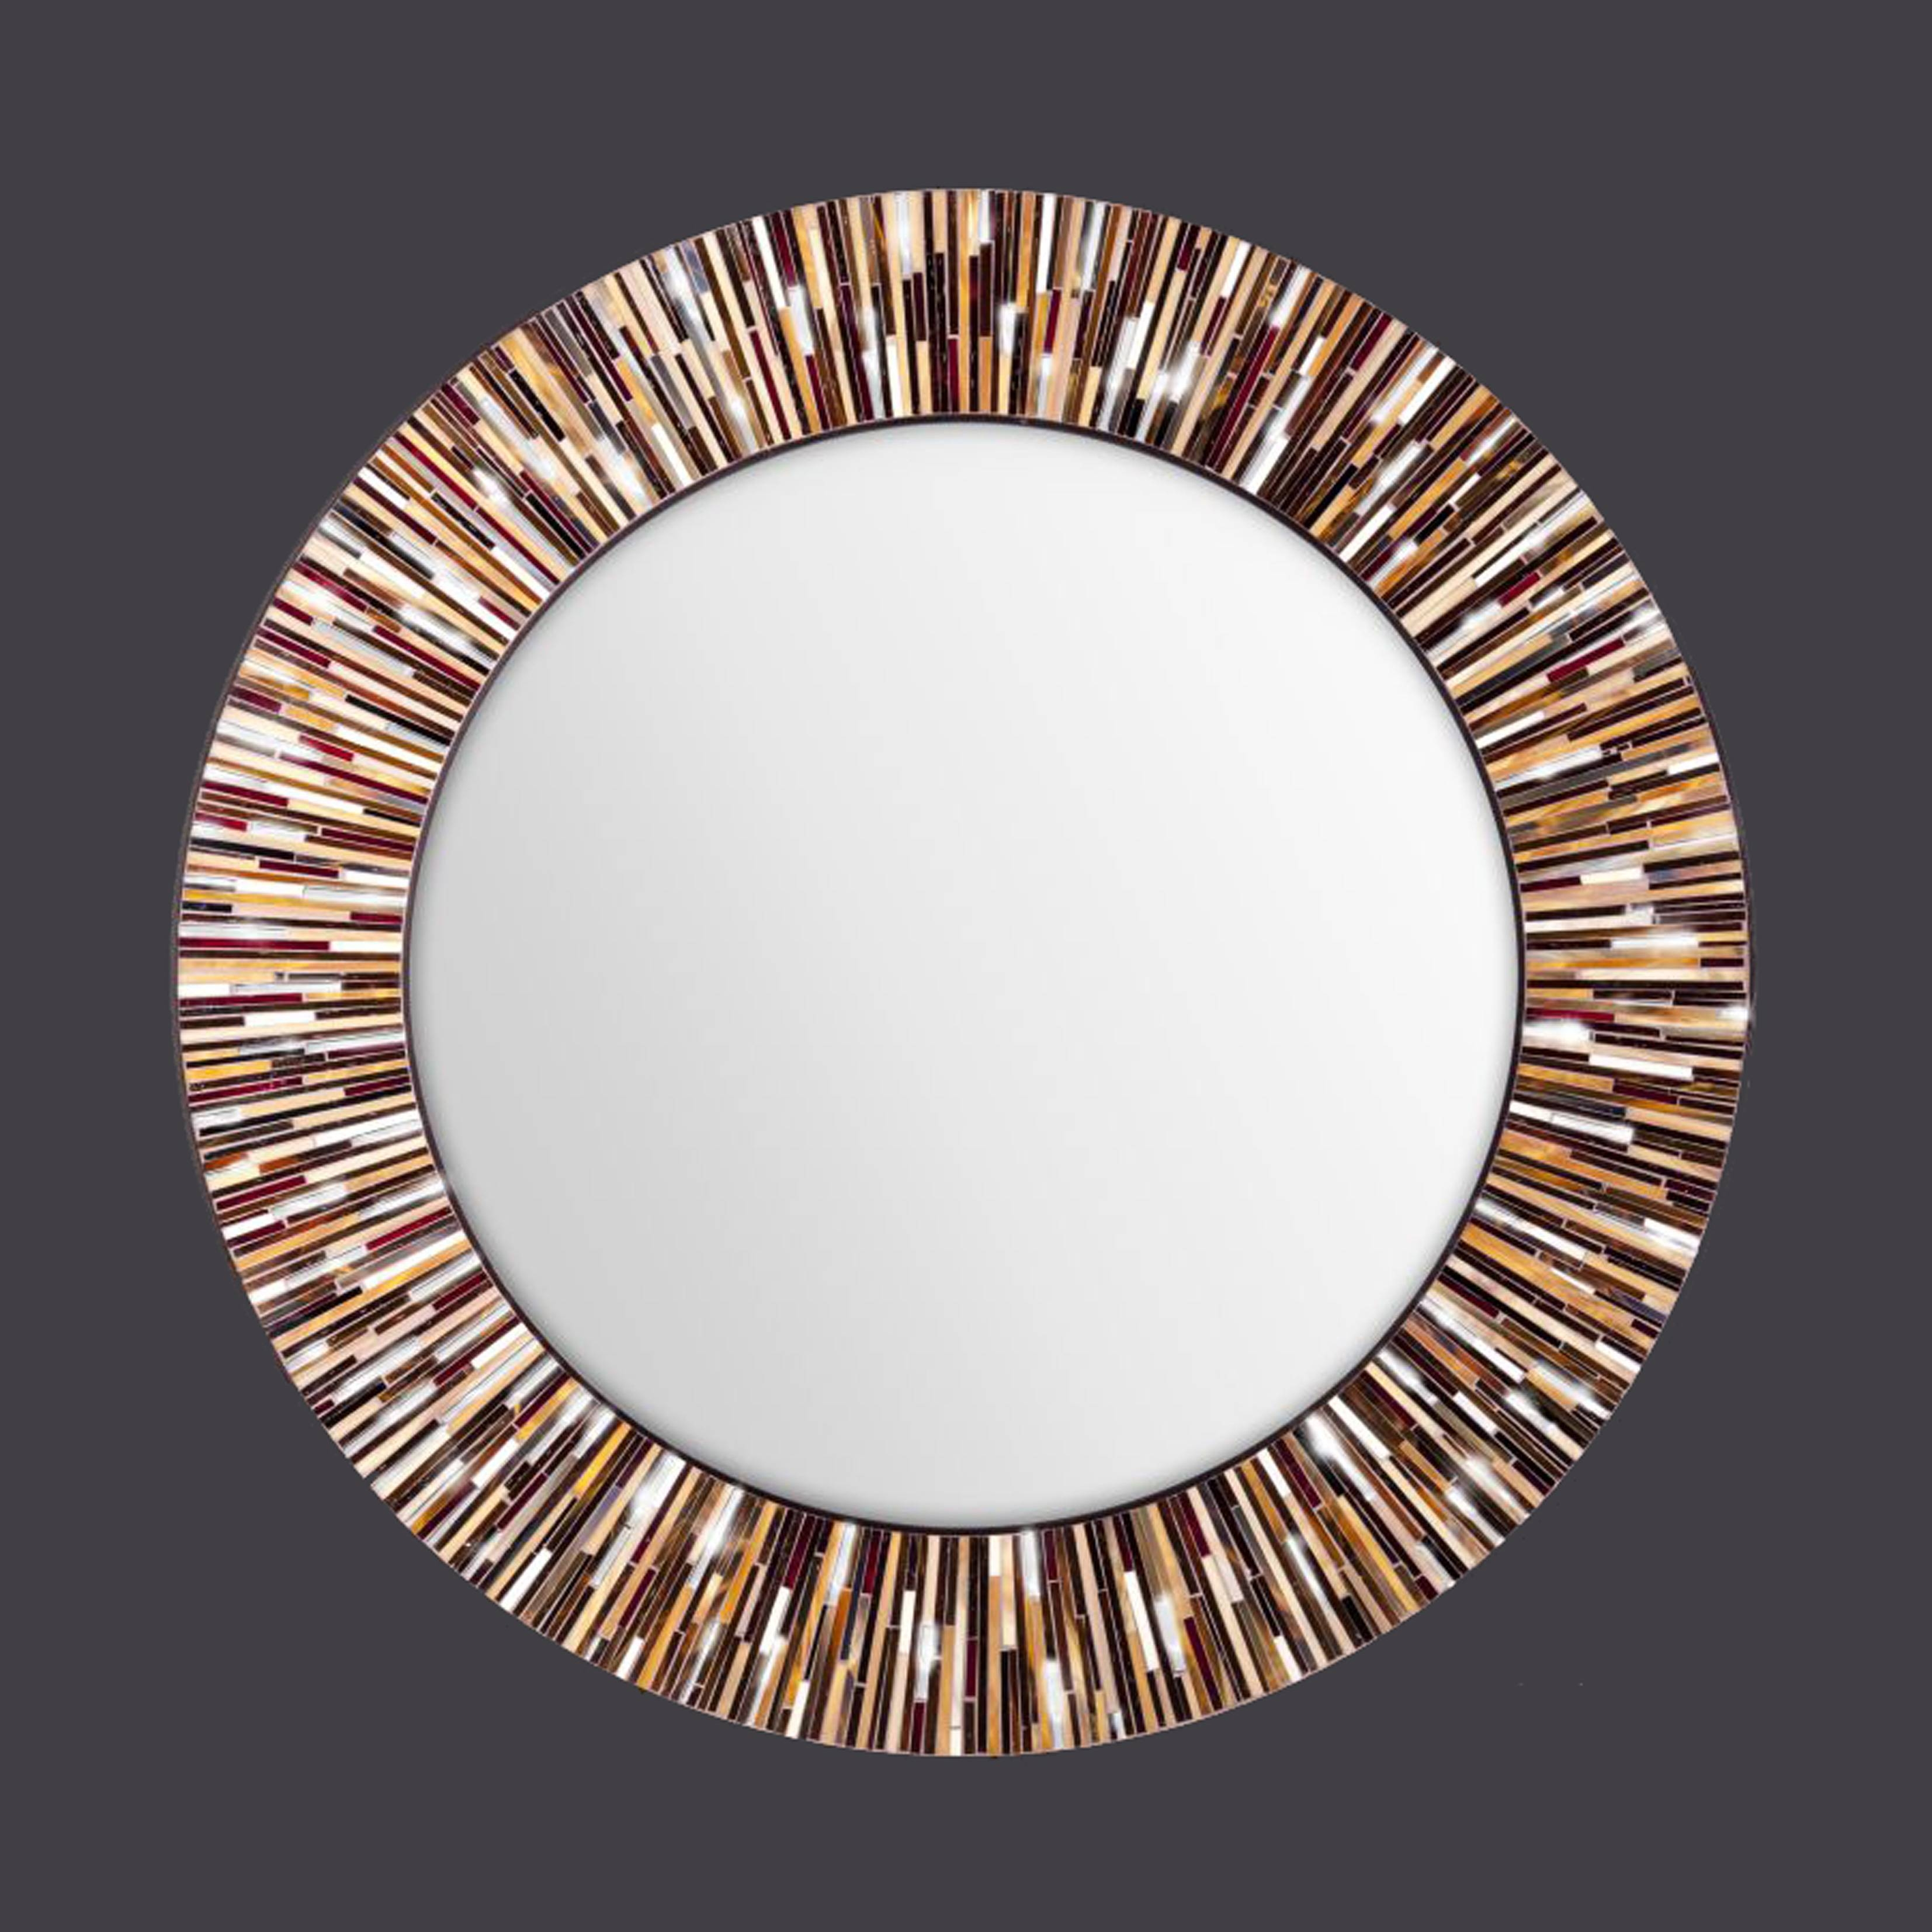 Mosaic Mirrors For Sale 109 Stunning Decor With All White Wall inside Large Circle Mirrors (Image 23 of 25)